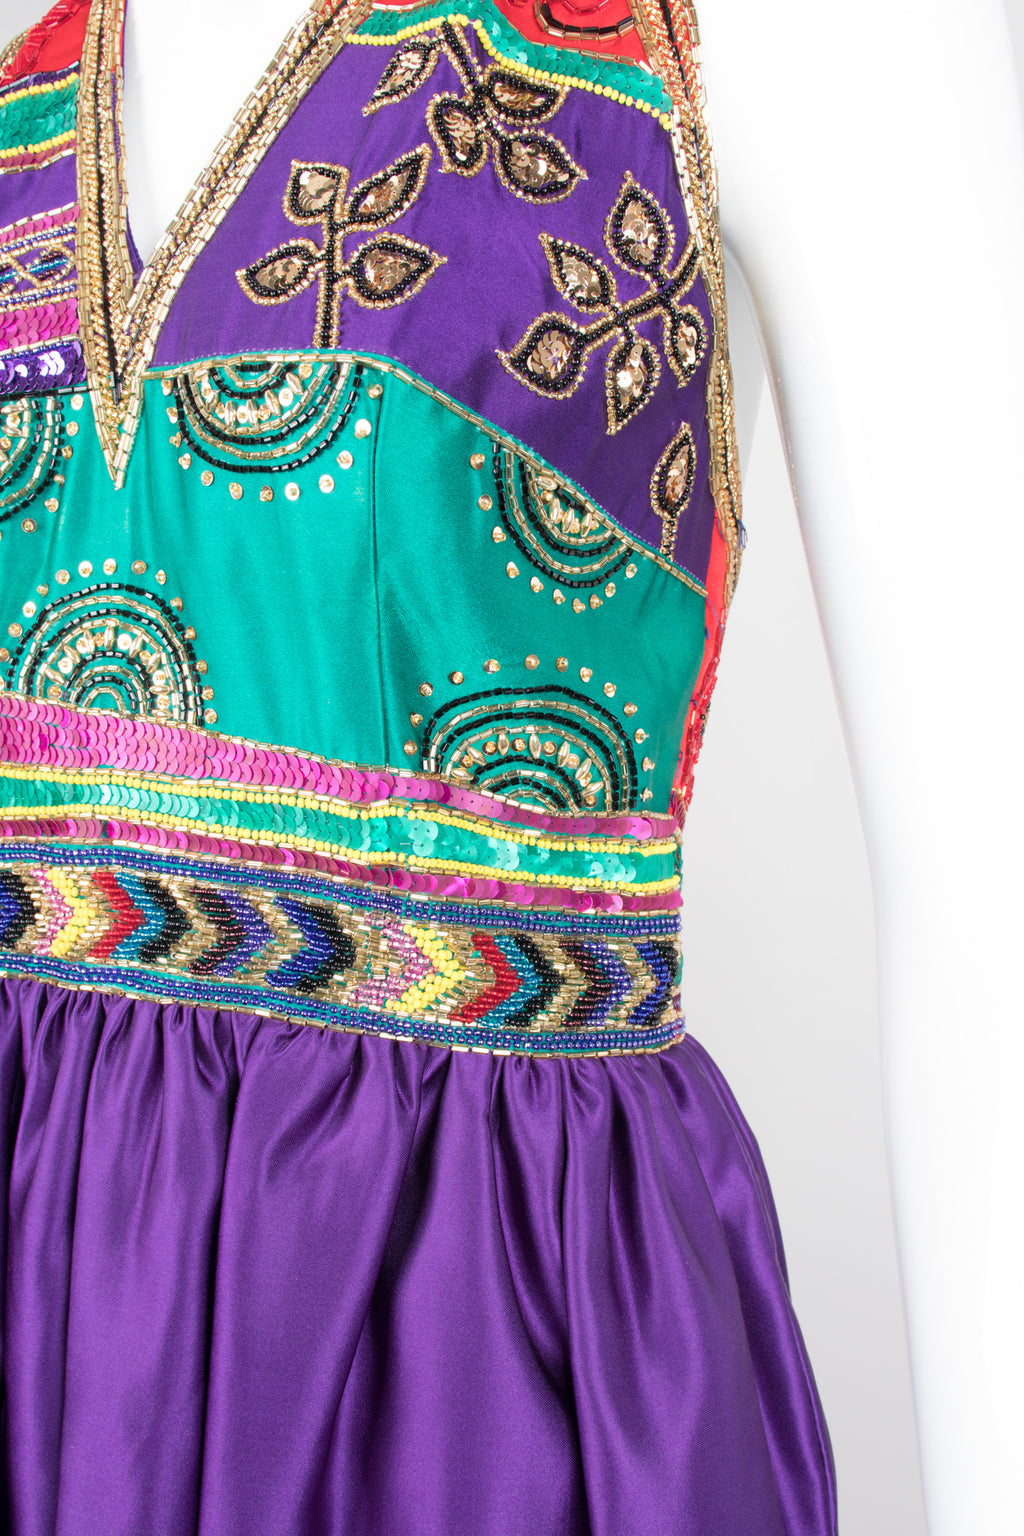 Victoria Royal Jewel Tone Embellished Indian Sari Halter Dress